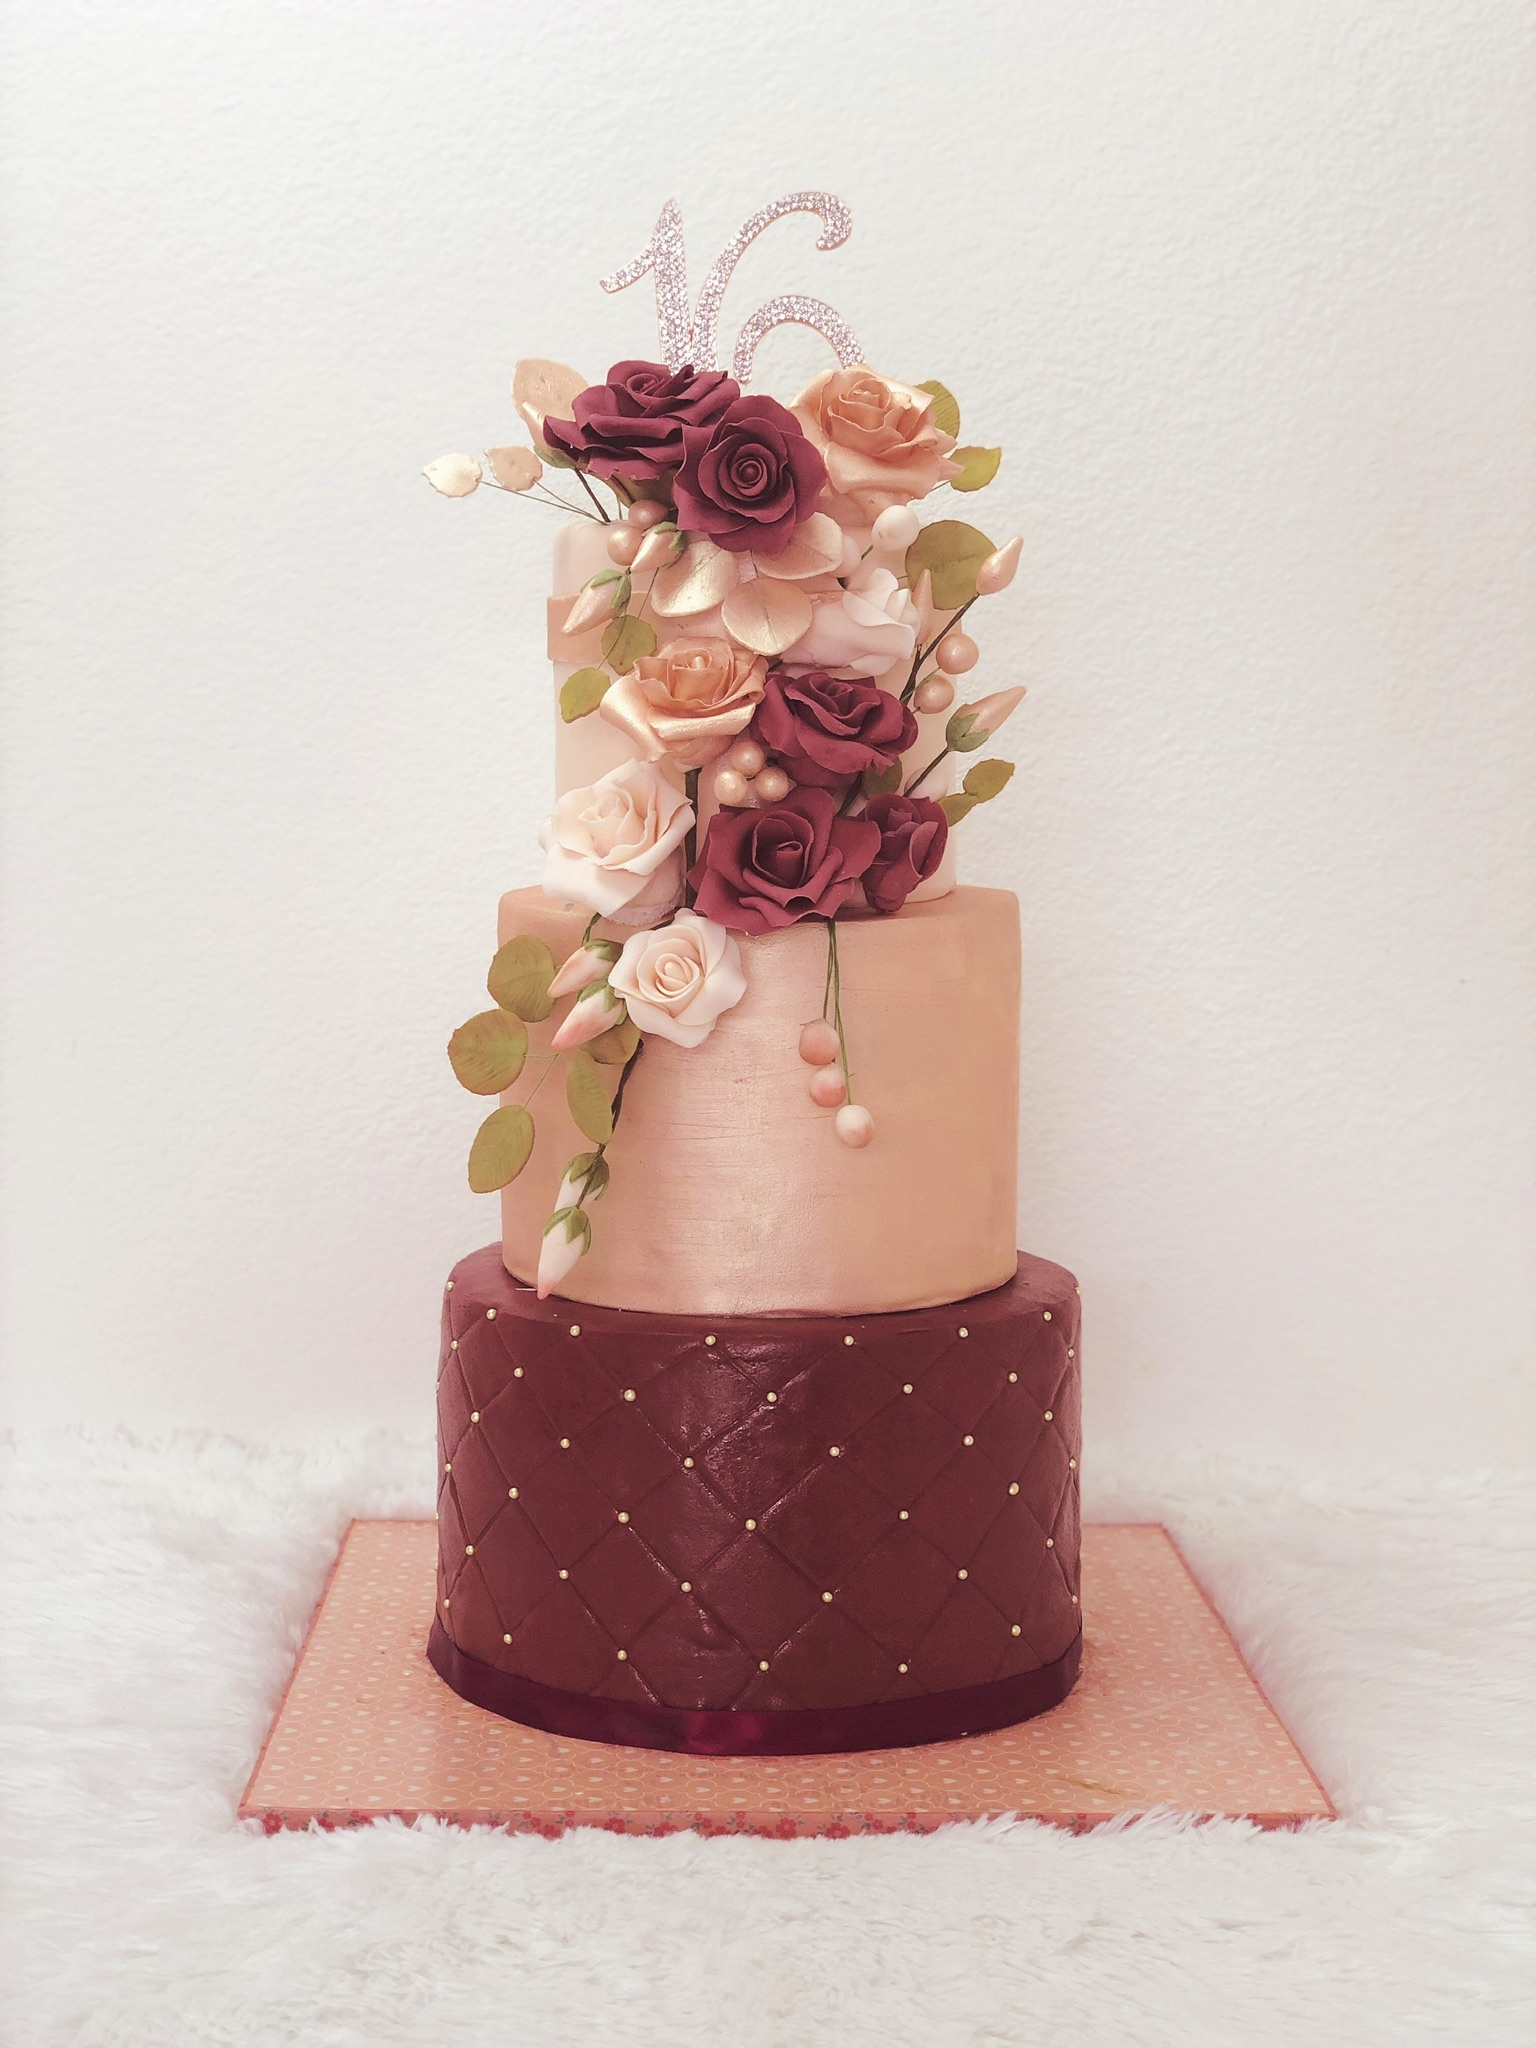 Burgundy and Taupe fondant wedding cake